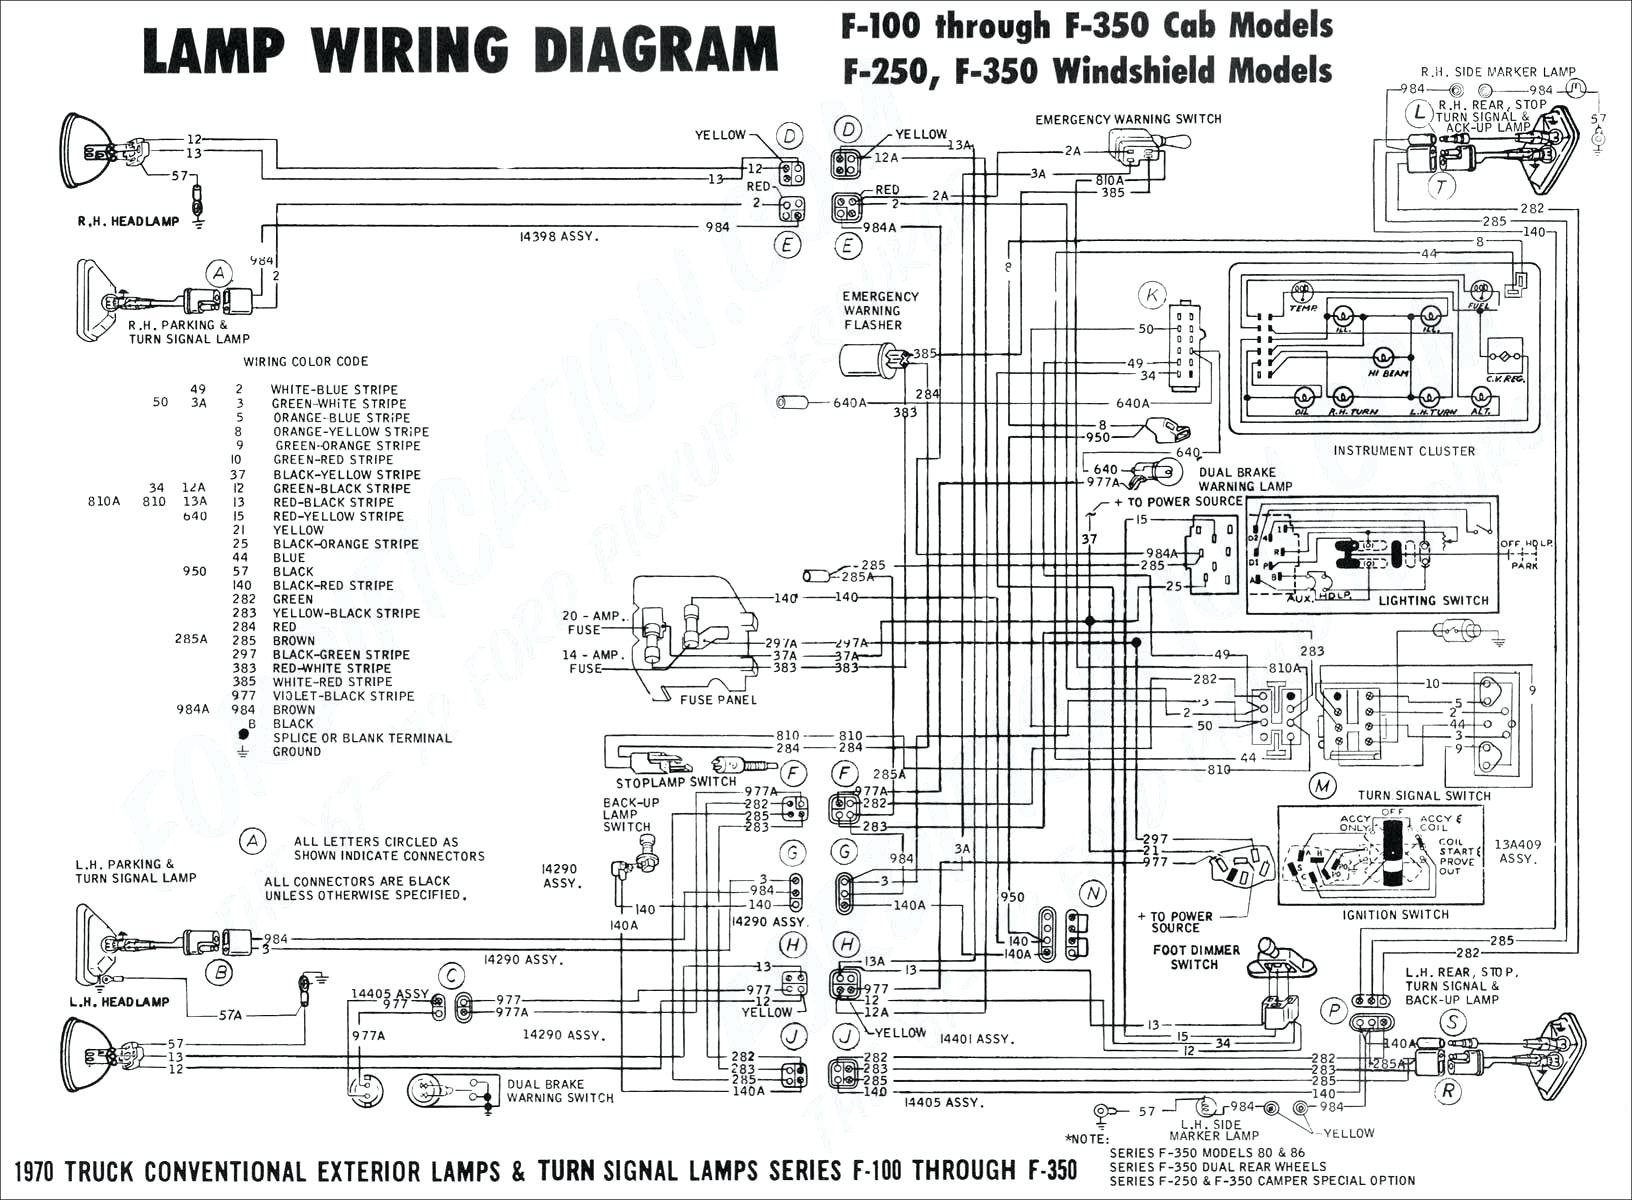 Wiring Diagram Tbf19 Ge Refrigerator | Wiring Diagram on